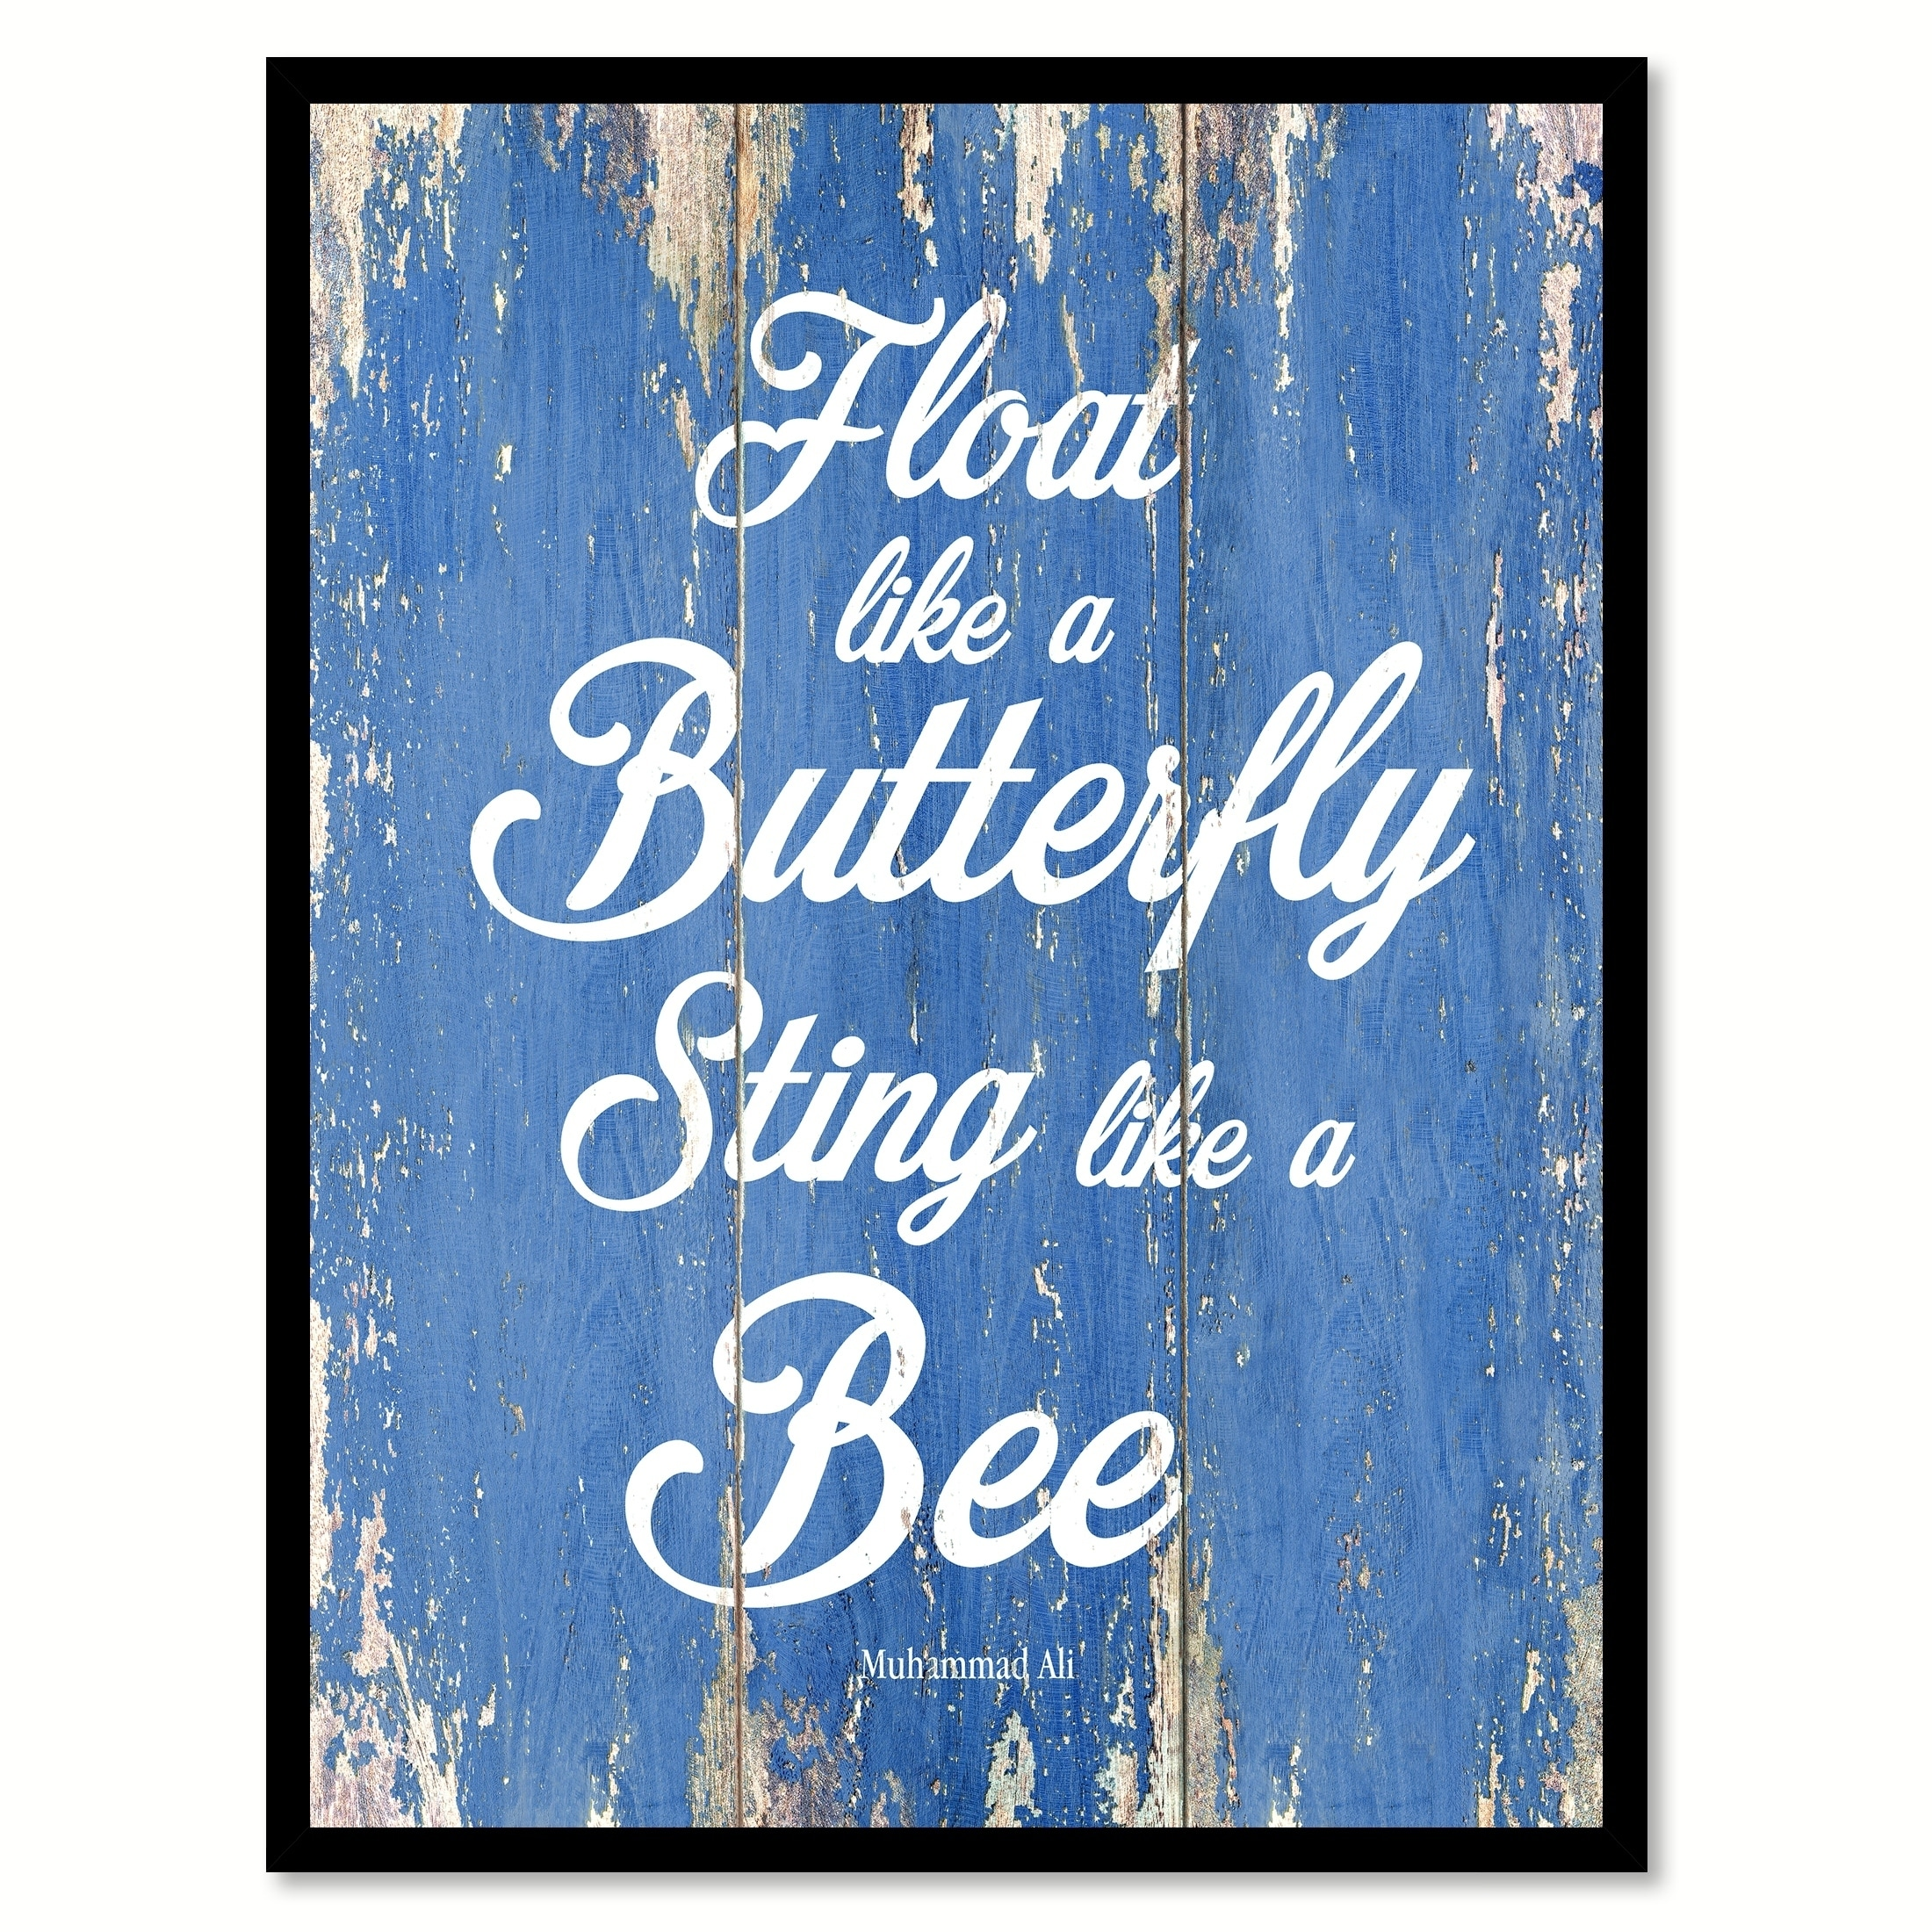 BLACK AND WHITE MUHAMMAD ALI BUTTERFLY QUOTE CANVAS PICTURES WALL ART PRINTS